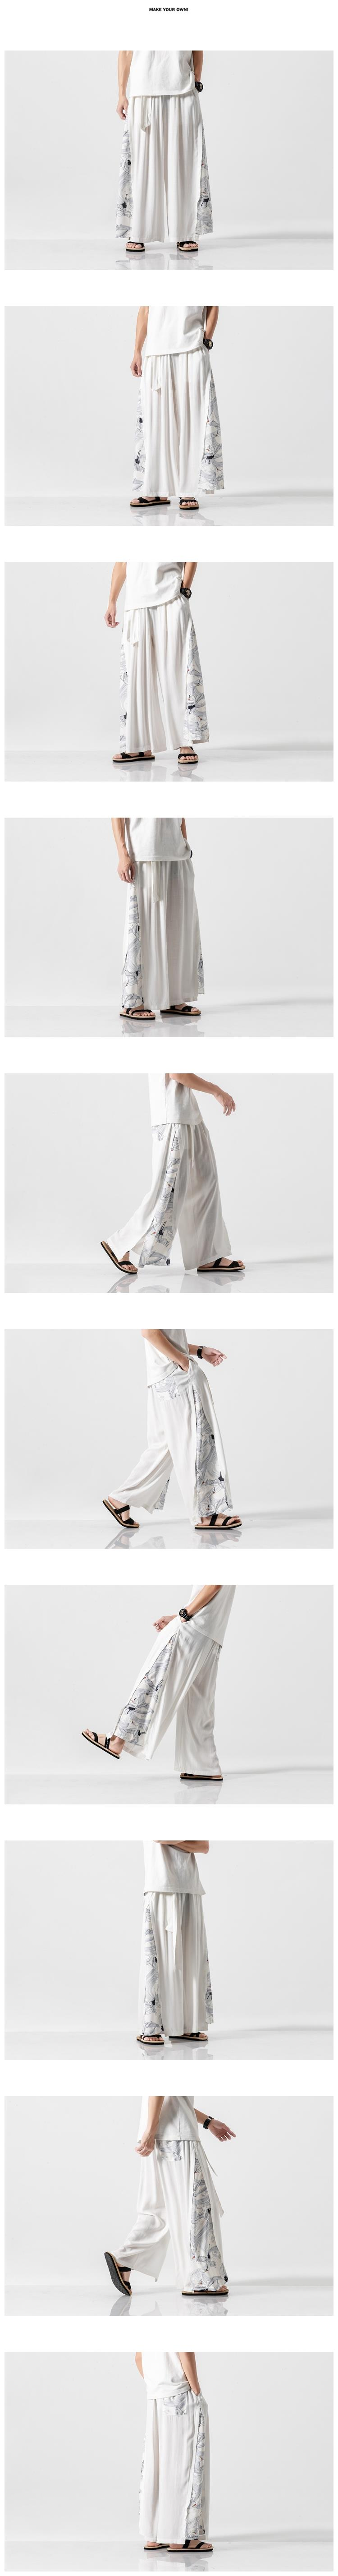 Sinicism Store 2020 Summer Chinese Style Cotton Pants Mens Patchwork Vintage Loose Pants Male Wide Leg Pants 26